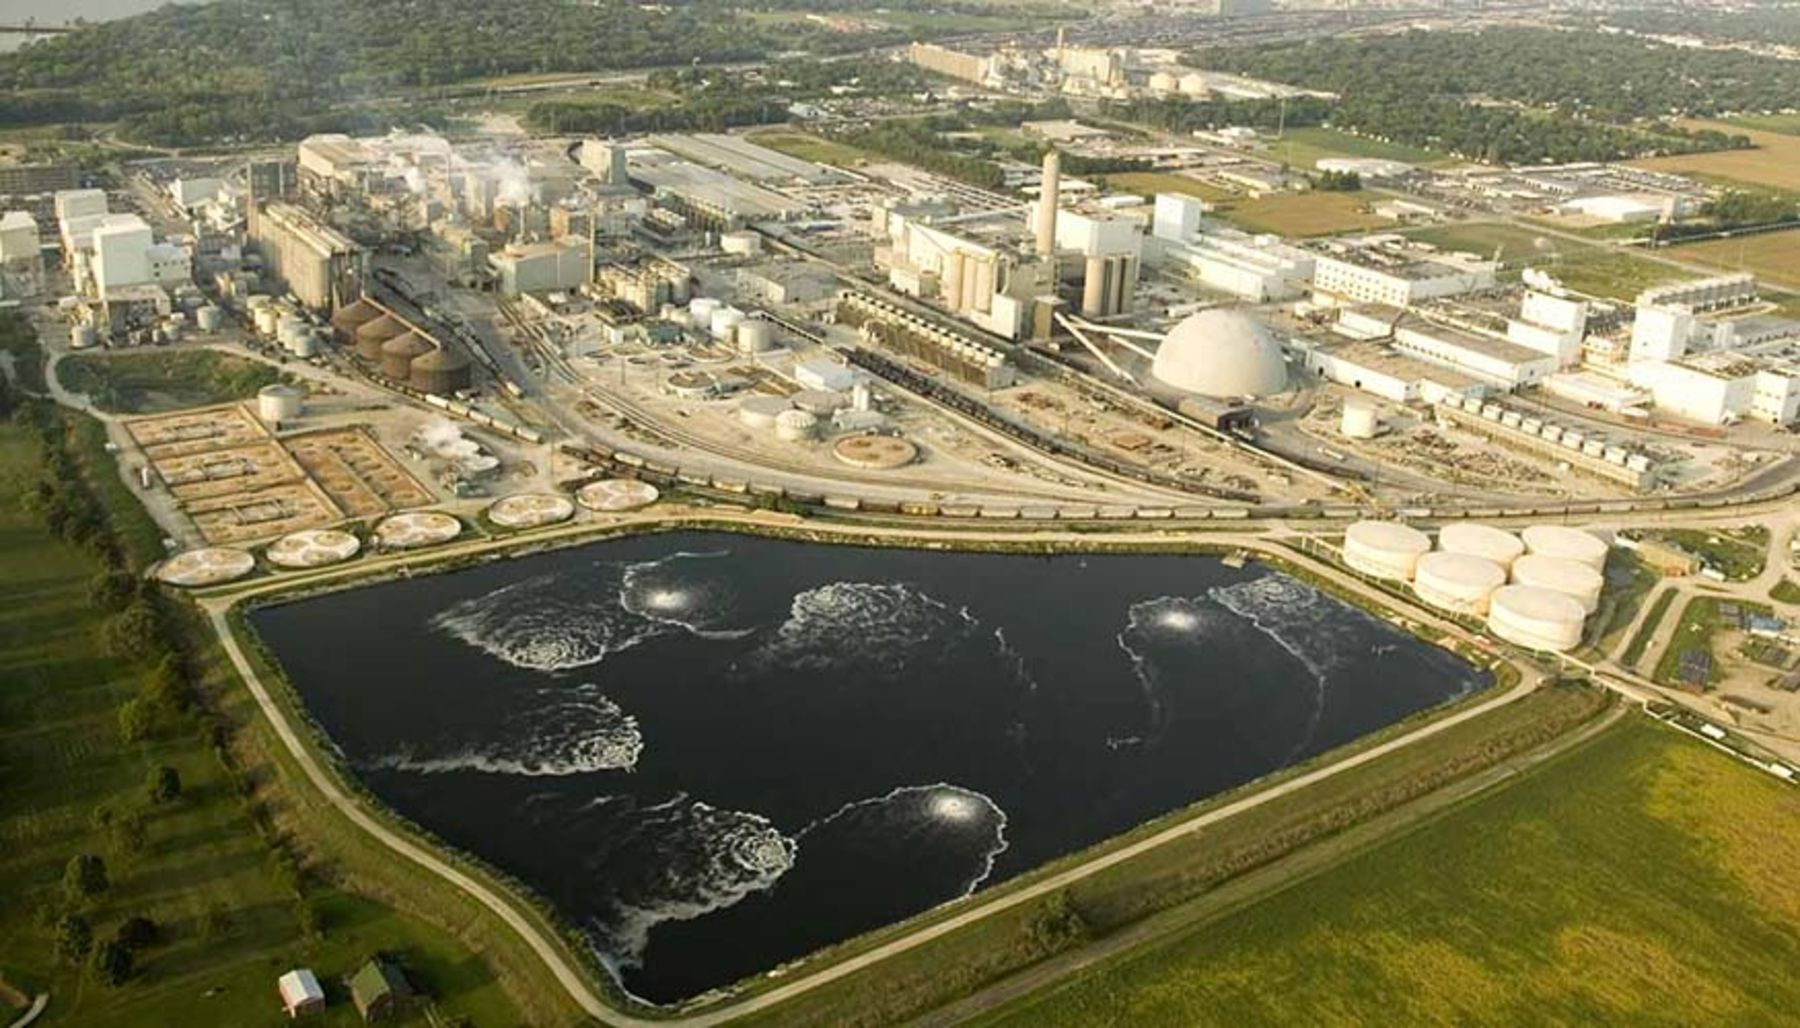 relates to Five Carbon Capture Techniques That Could Help Mitigate Global Warming